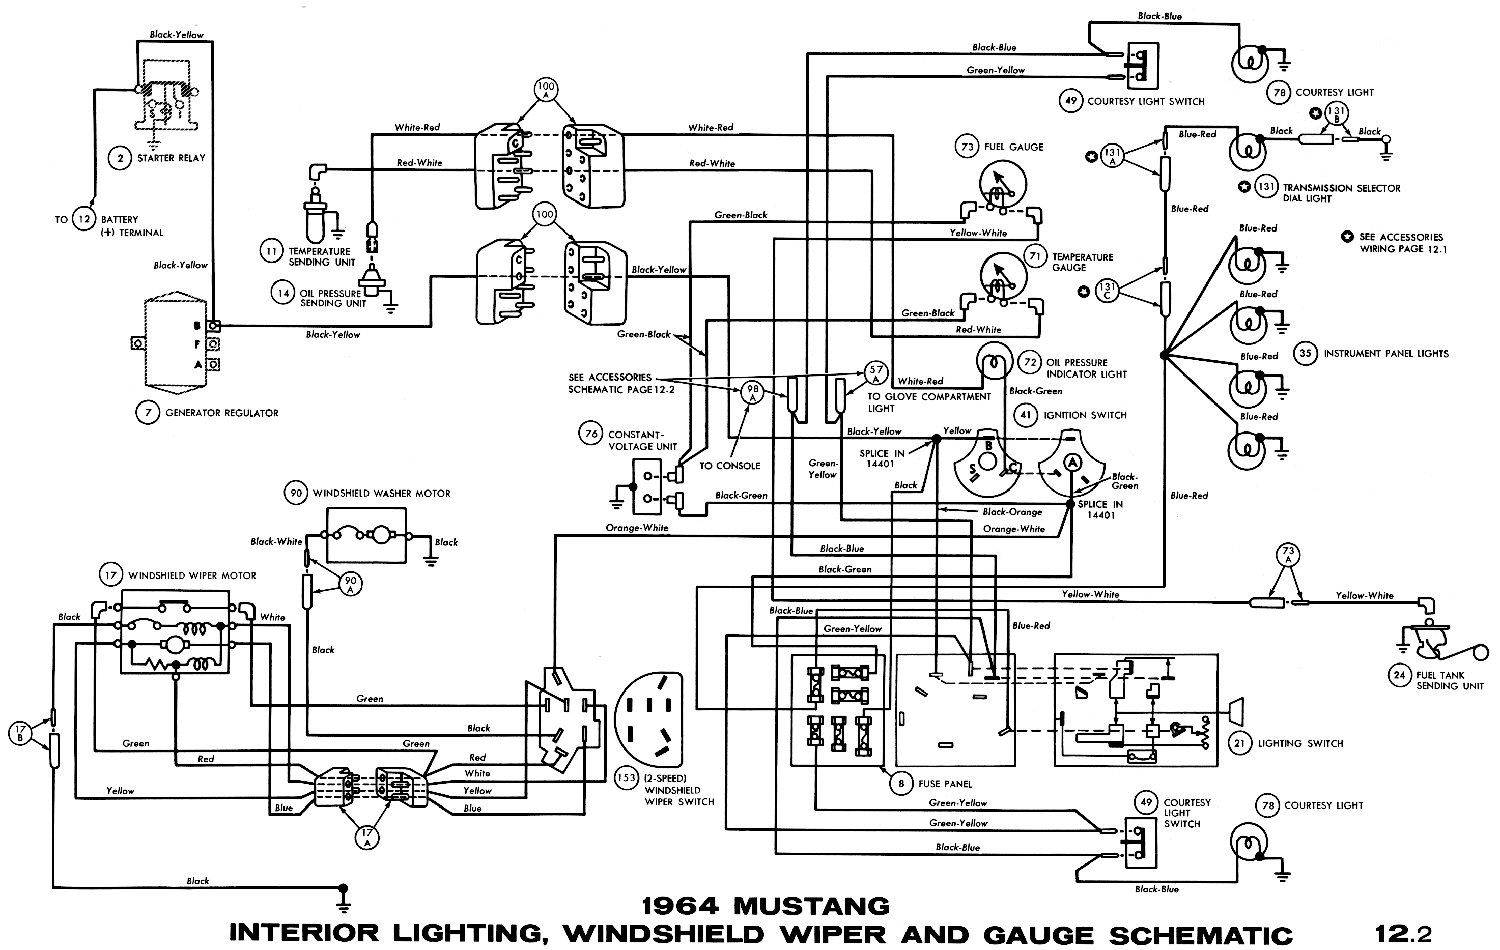 1967 Gto Radio Wiring Diagram Library 1965 Lemans 65 Mustang Wiper Detailed Schematics Rh Jppastryarts Com 1966